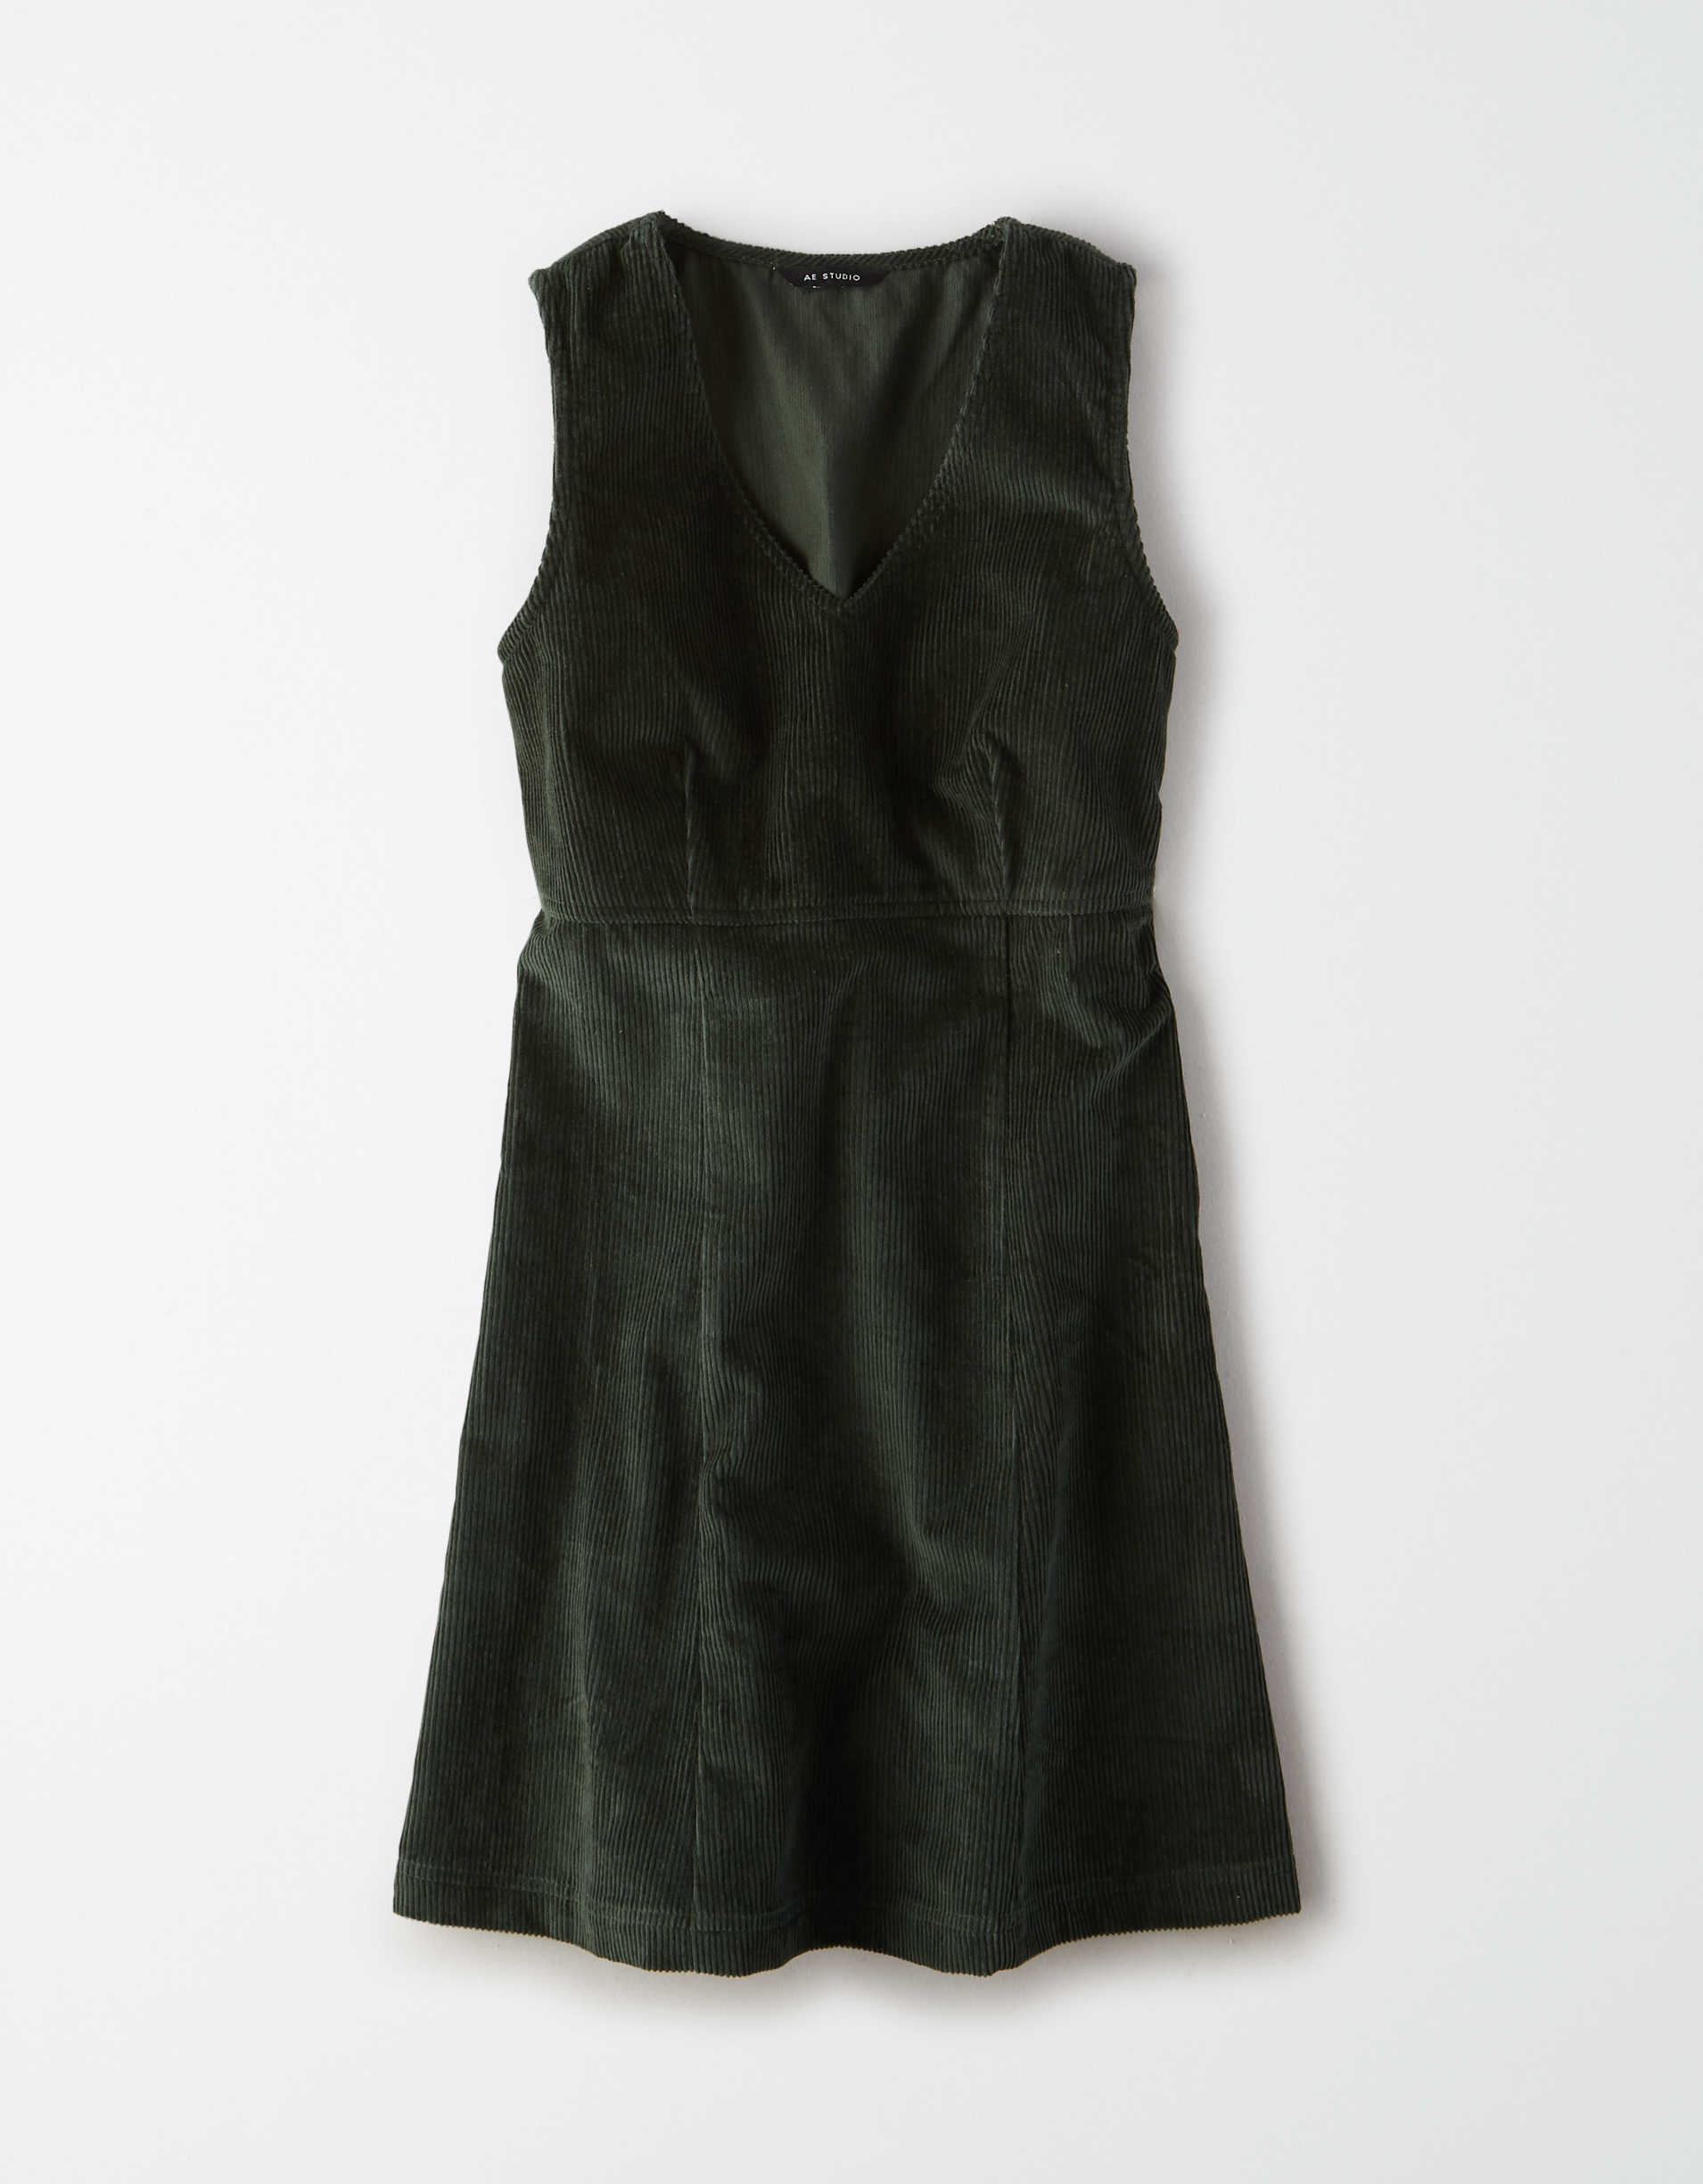 AE Studio Corduroy Mini Dress